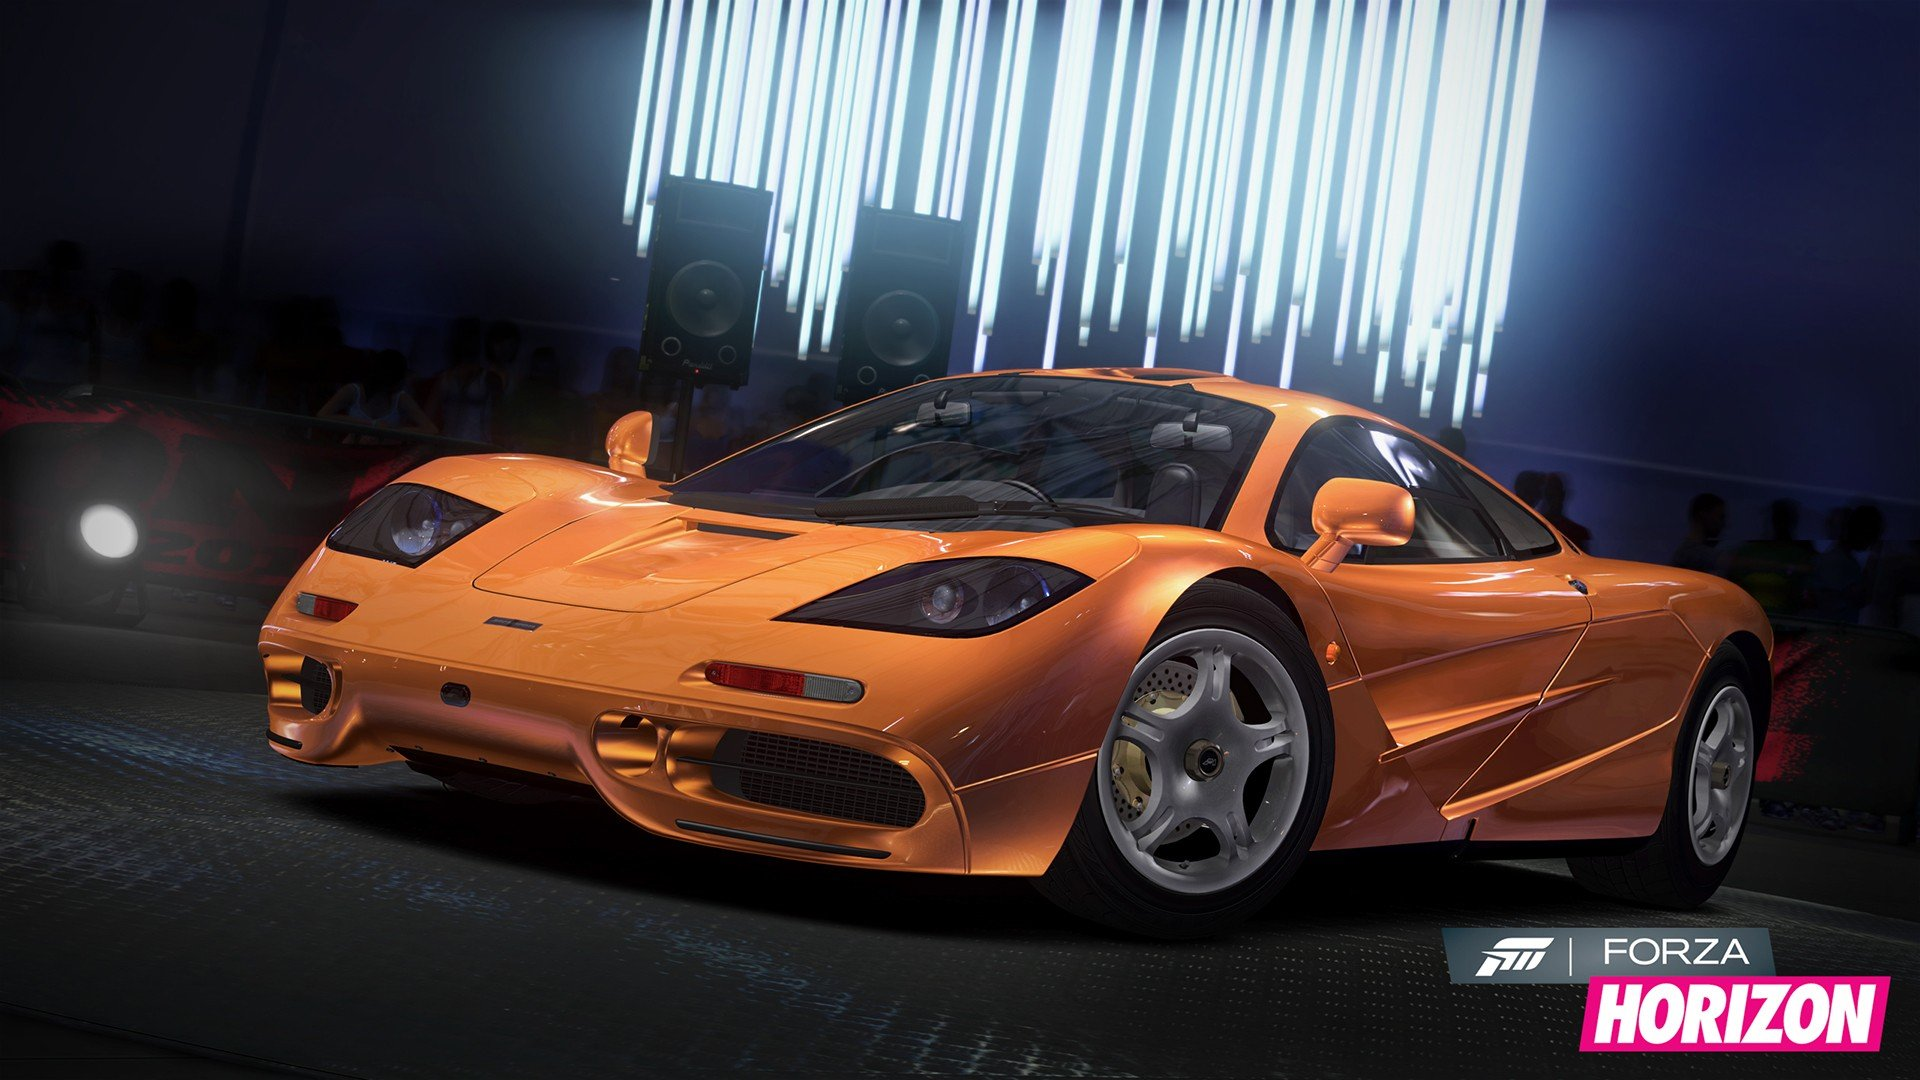 video games cars Xbox 360 McLaren F1 Forza Horizon